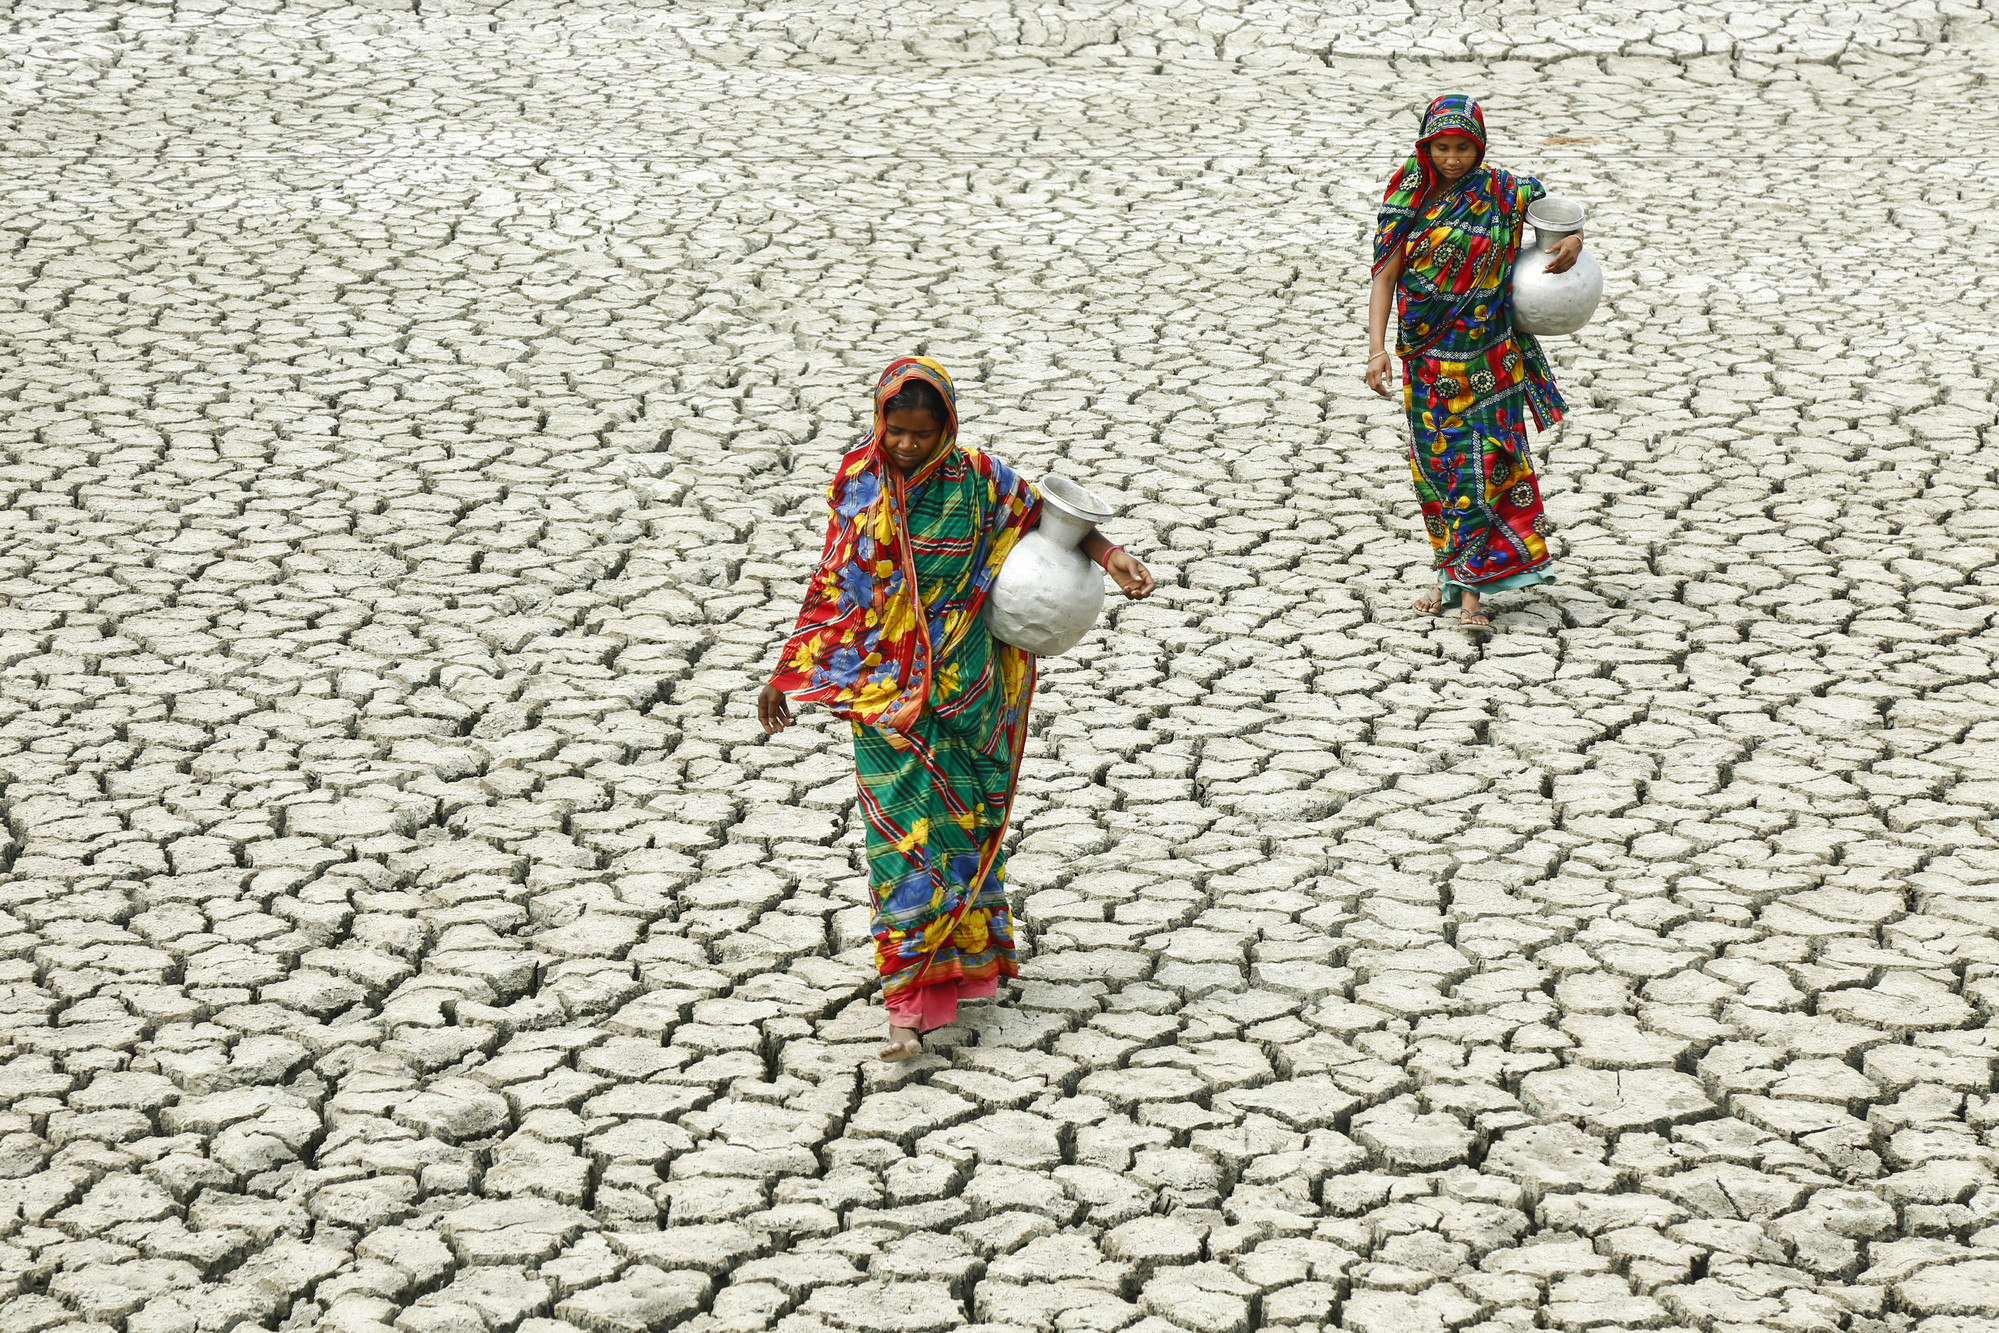 People in Koyra, Bangladesh have been feeling the impact of climate change for years. The barren ground these women walk across to collect water became contaminated after cyclone Aila hit in 2009.